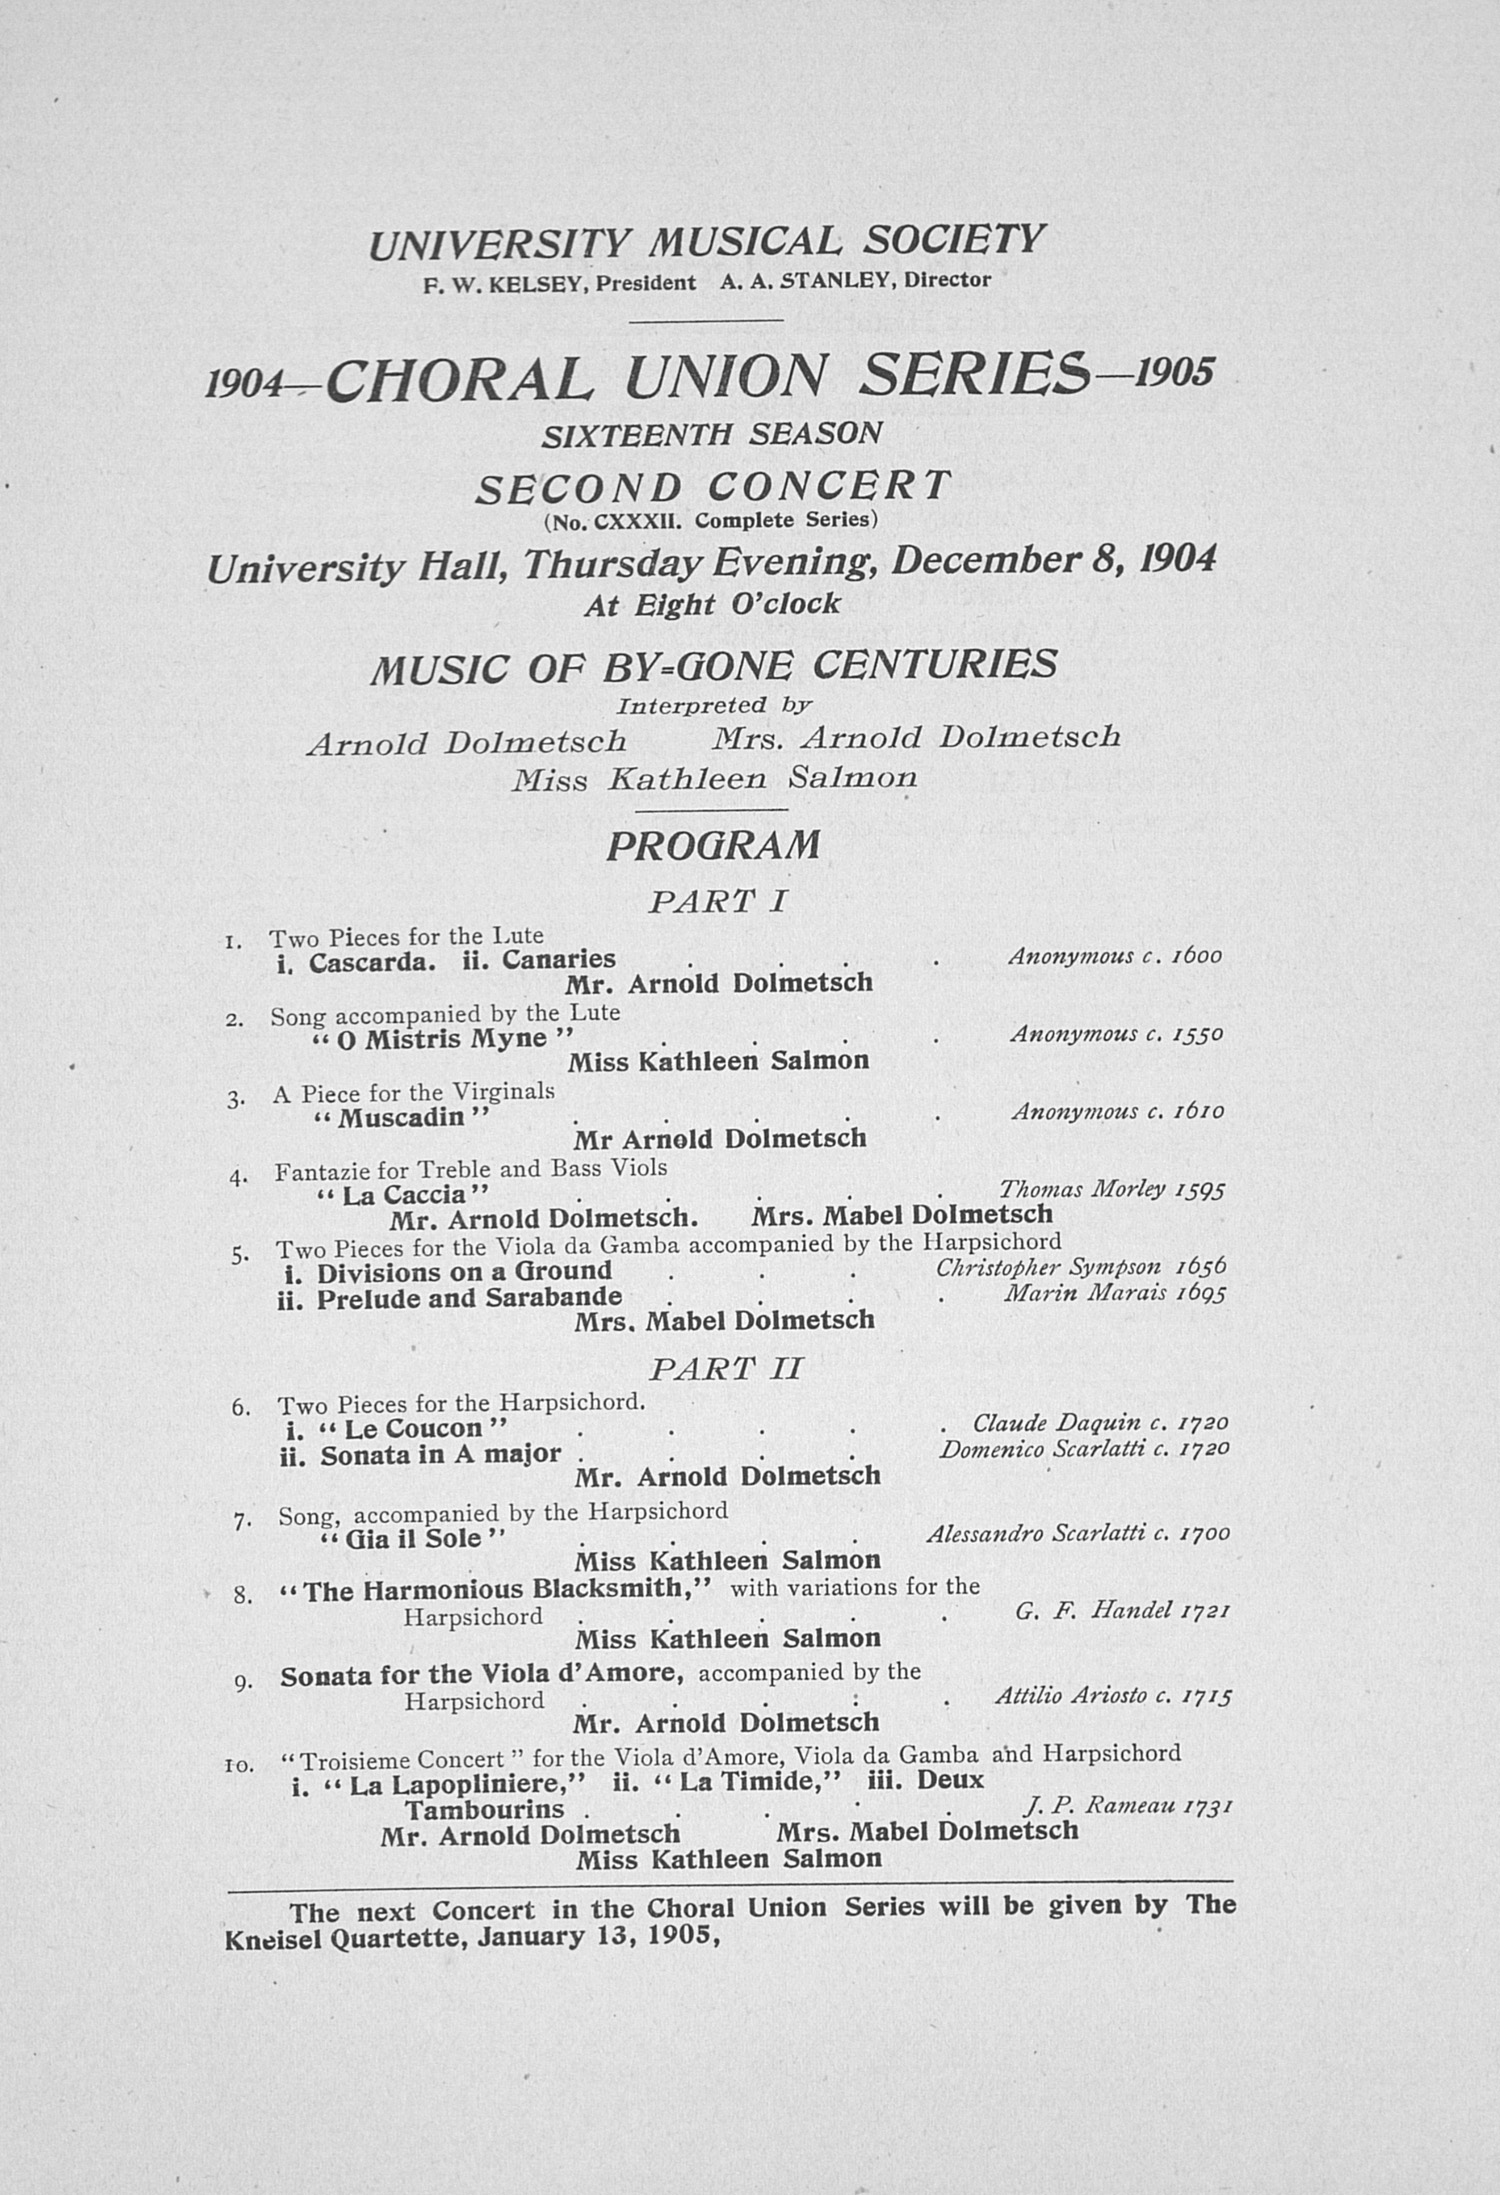 UMS Concert Program, December 8, 1904: Choral Union Series -- Gone Centuries image